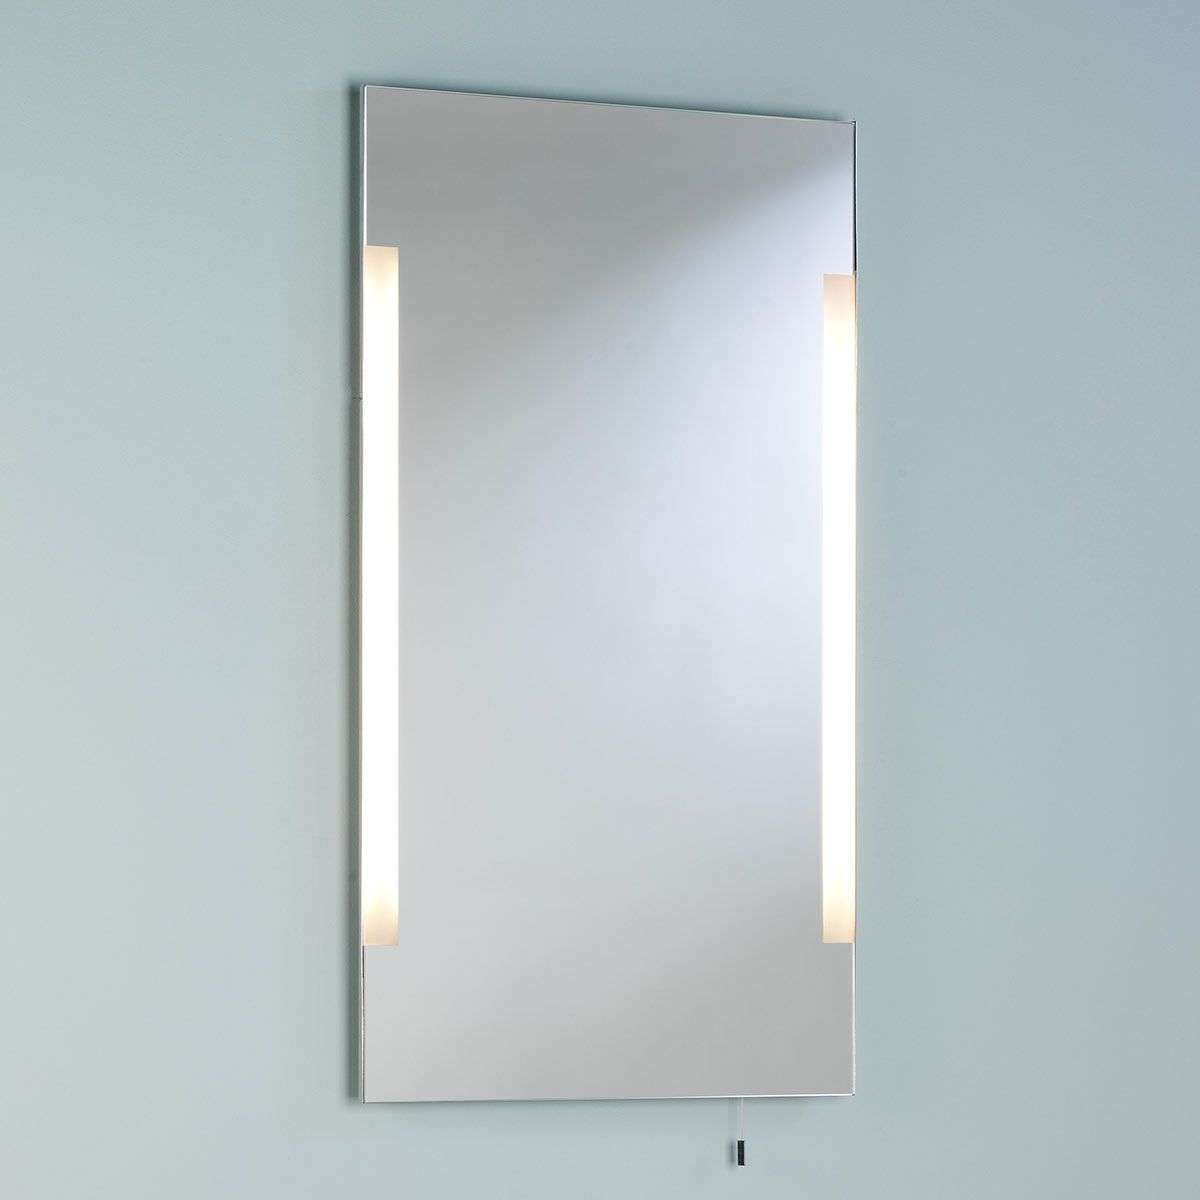 Imola 800 Wall Mirror with Integrated Lighting-1020060-32